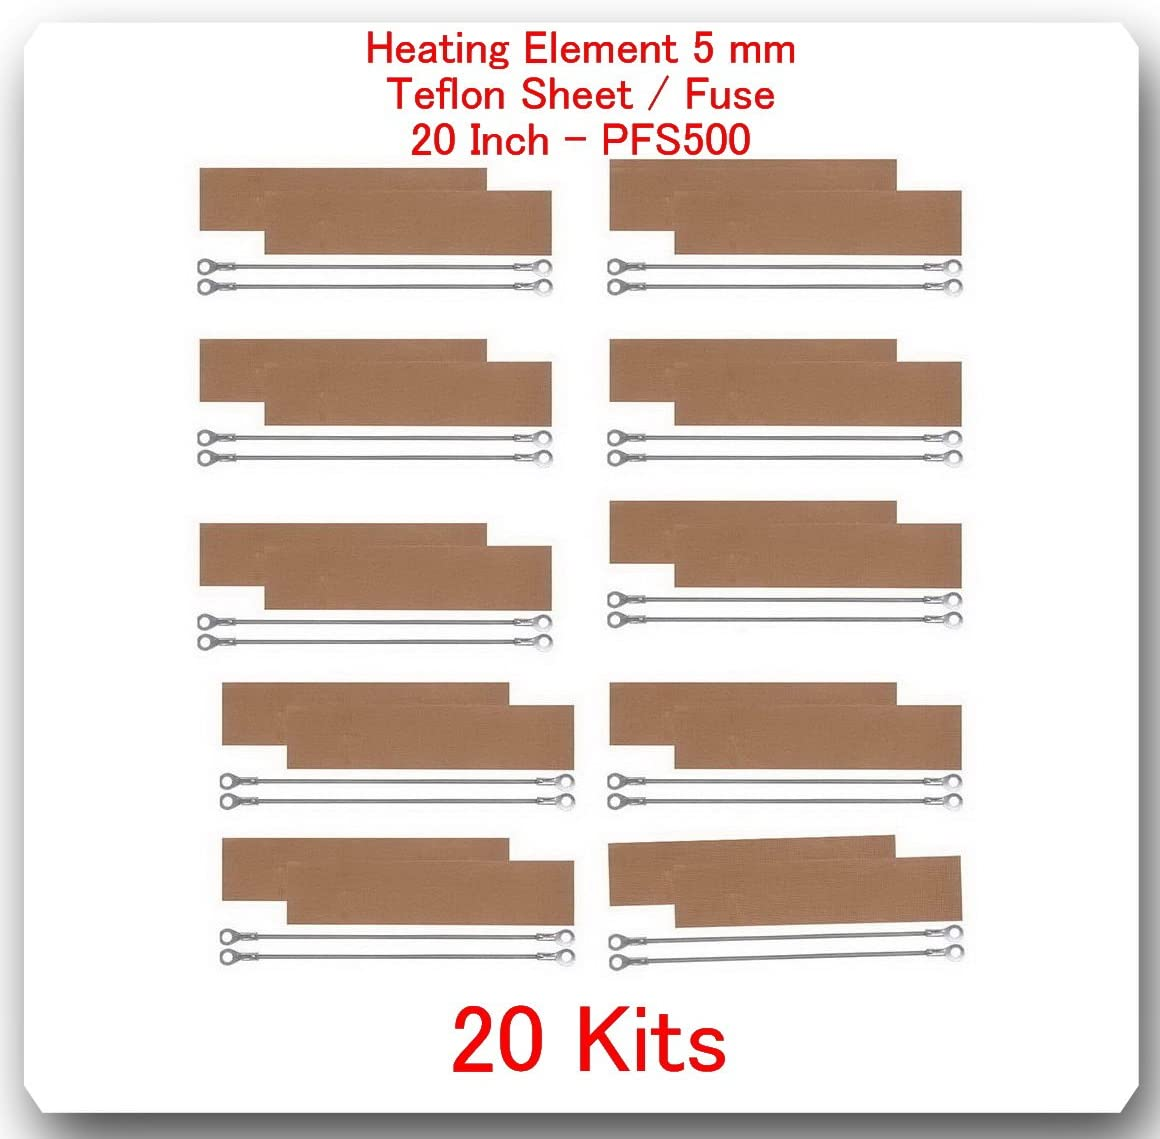 (20 Kits)(REPLACEMENT ELEMENTS FOR IMPULSE SEALER PFS-500 = 20